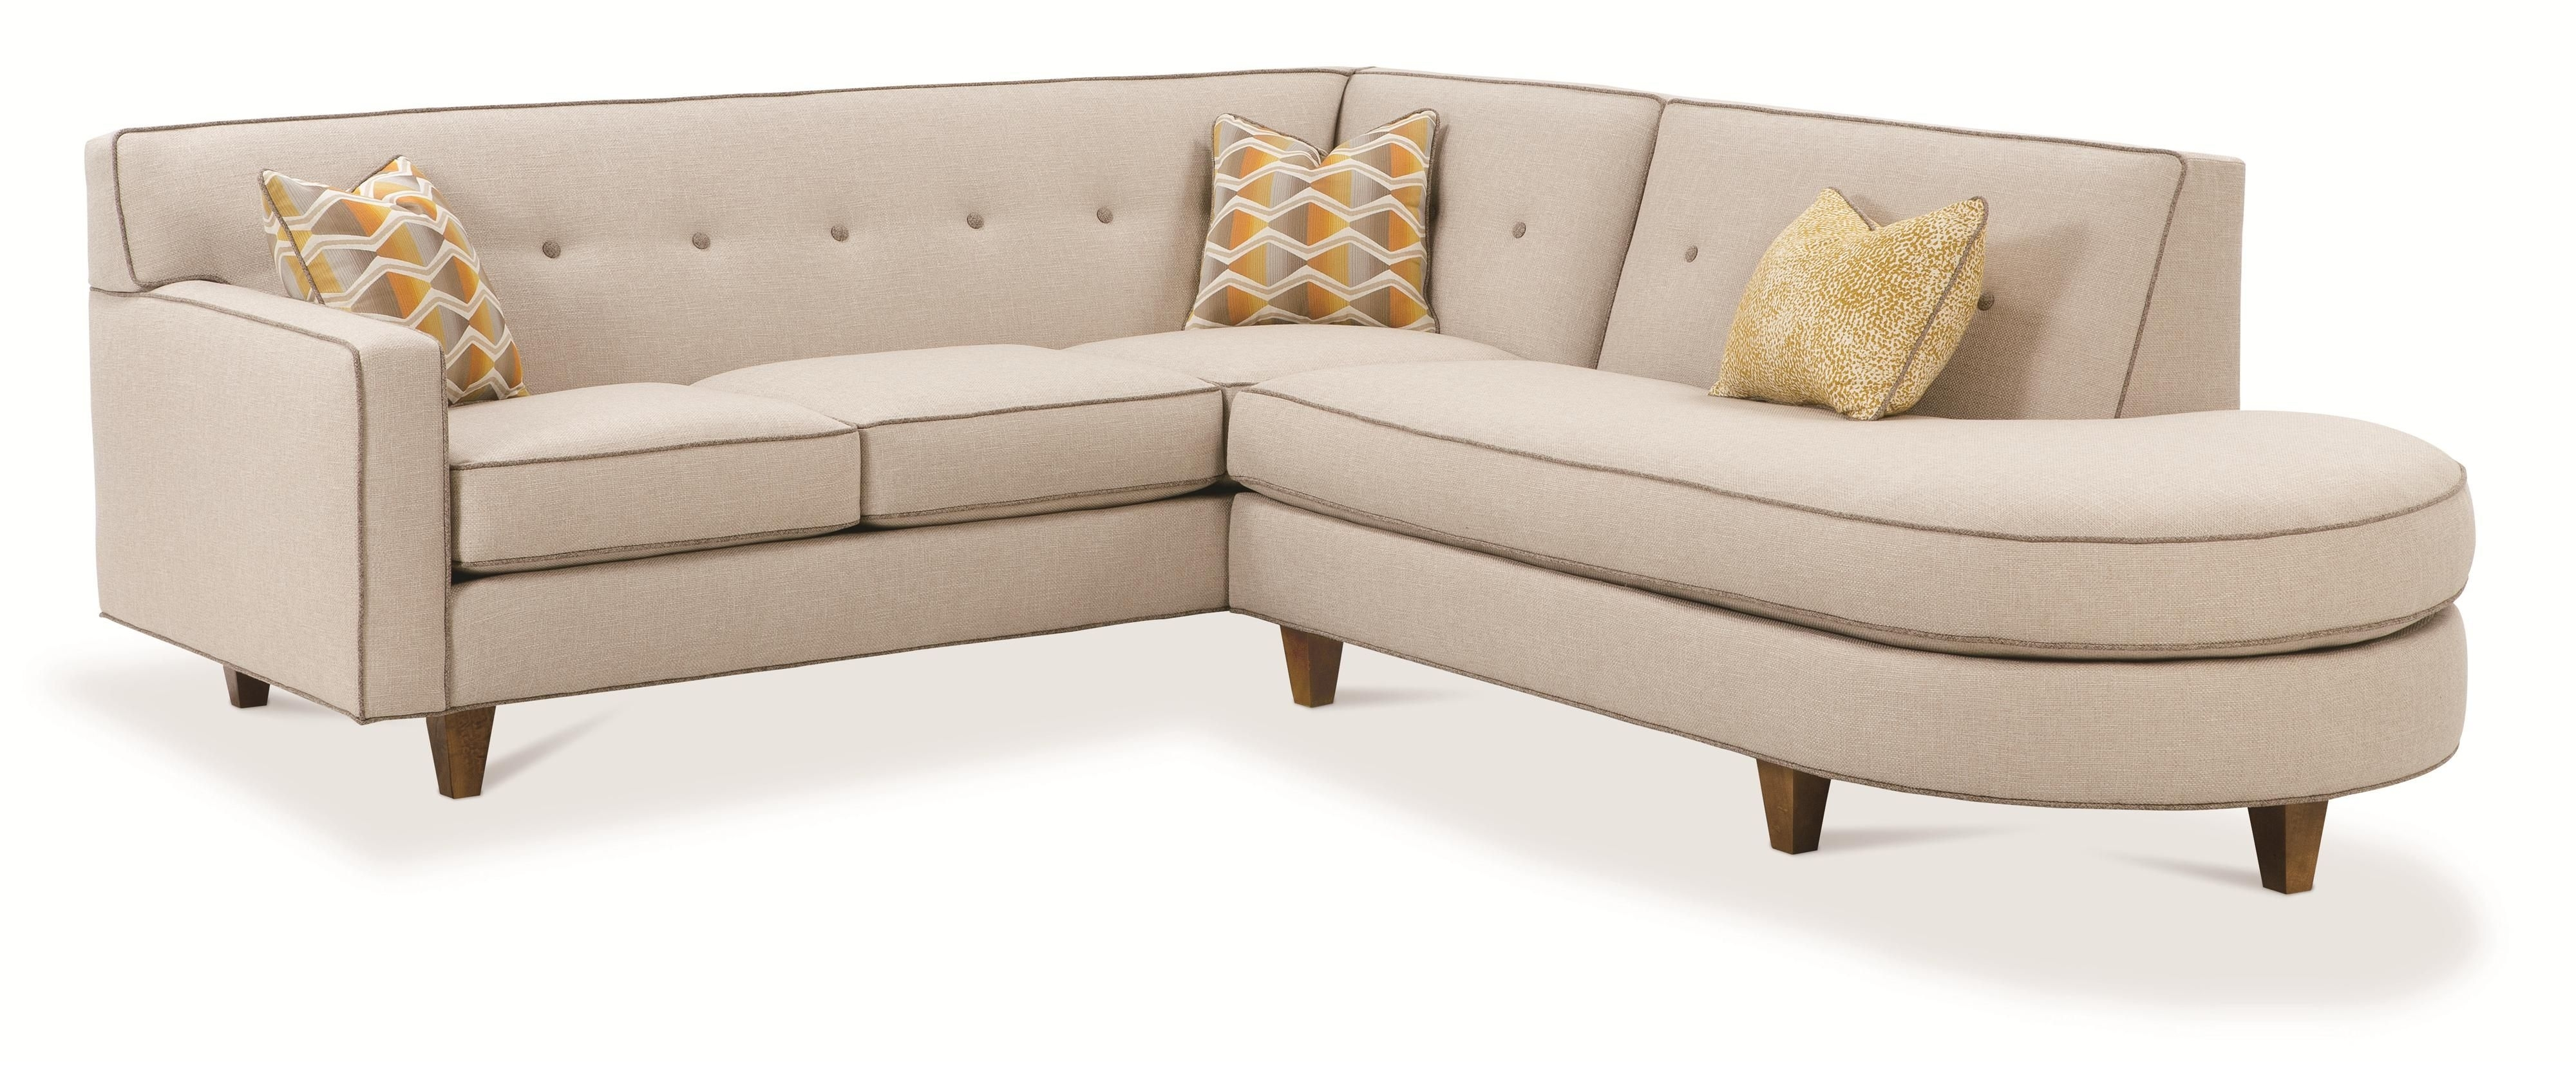 Rowe Dorset Contemporary 2 Piece Sectional Sofa | Baer's Furniture With Naples Fl Sectional Sofas (View 6 of 10)